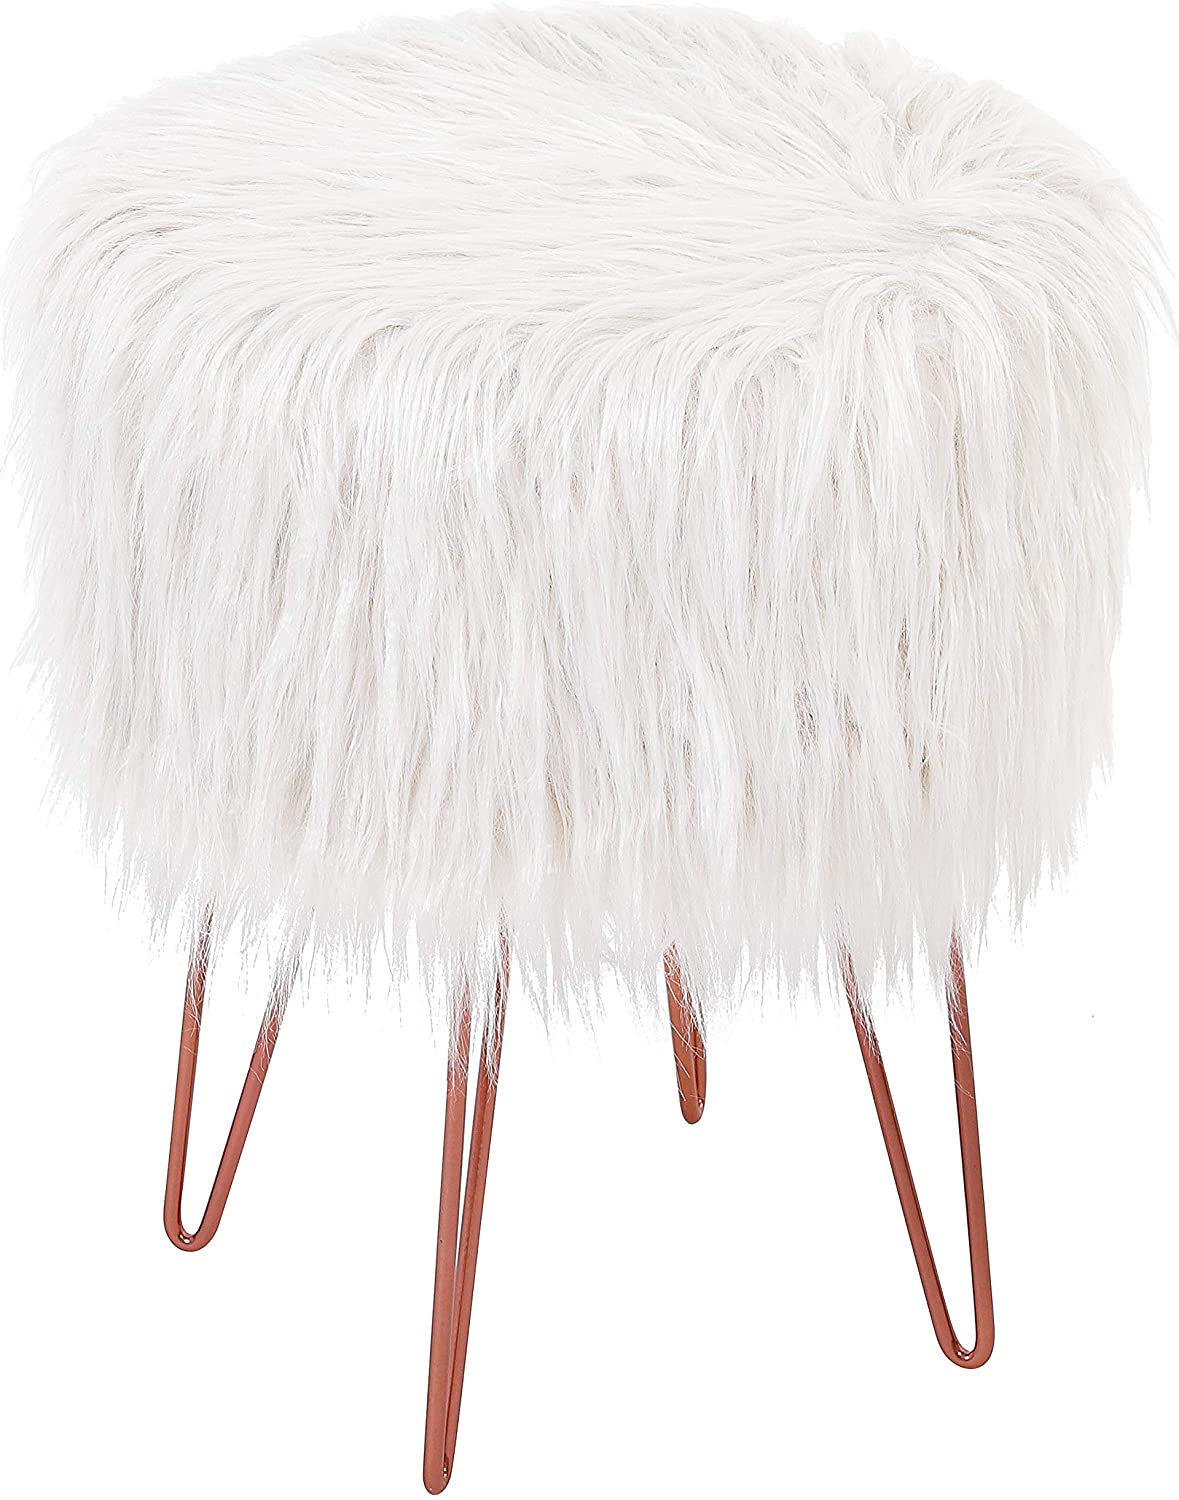 BIRDROCK HOME White Faux Fur Foot Stool Ottoman – Soft Compact Padded Seat - Living Room, Bedroom and Kids Room Chair – Hair Pin Metal Legs Upholstered Decorative Furniture Rest – Vanity Seat